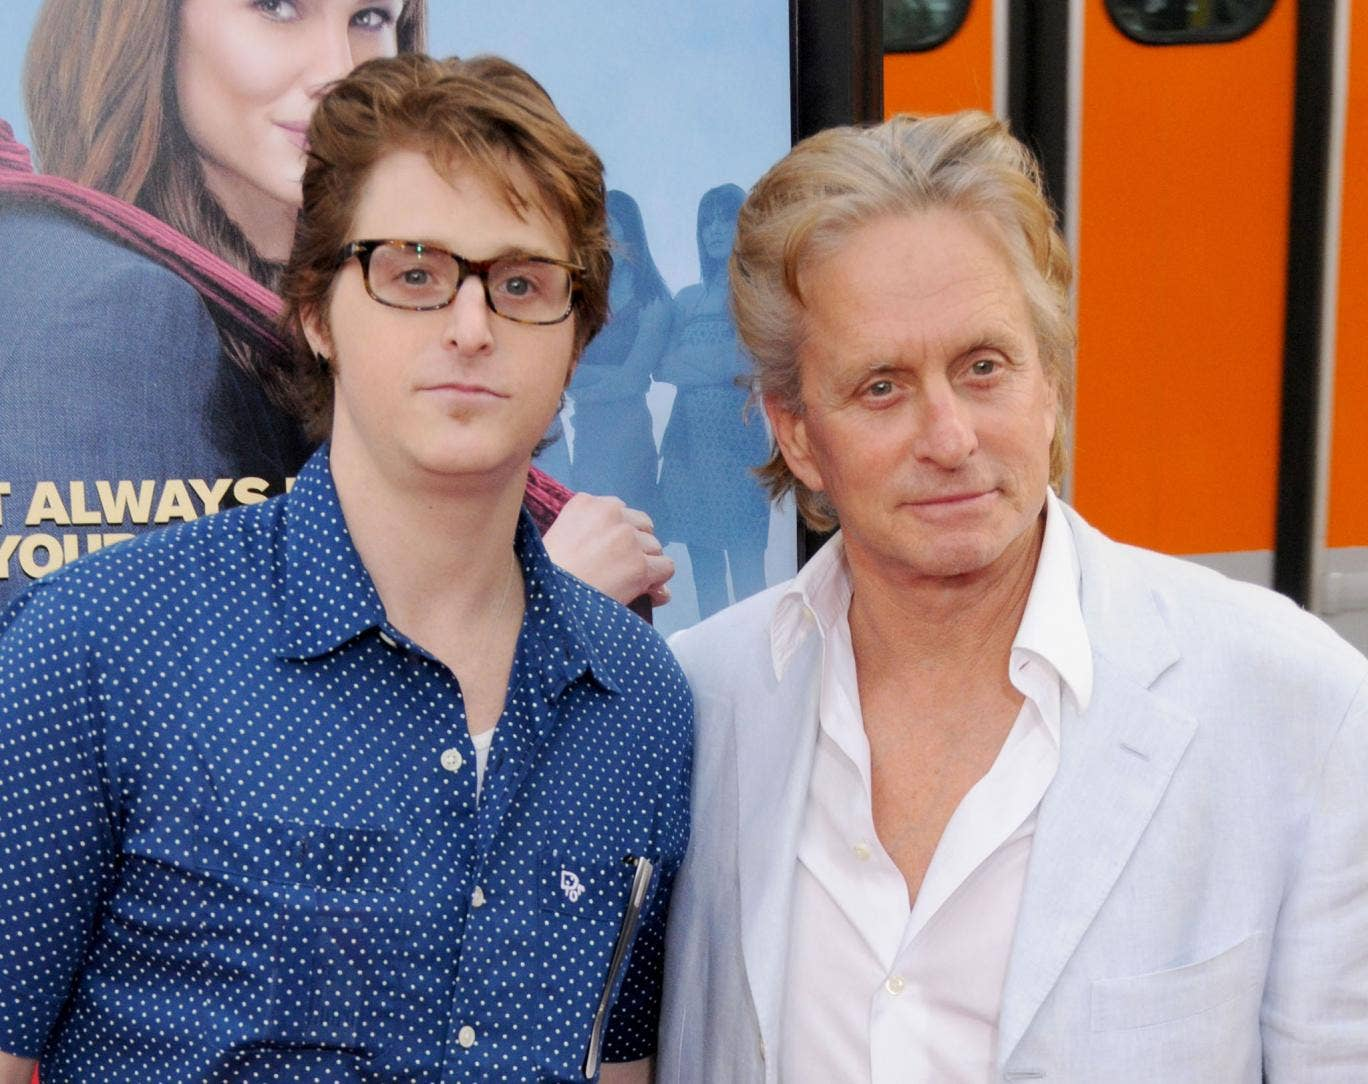 Michael Douglas and his son Cameron (left) at the Ghosts of Girlfriends Past world premiere in 2009